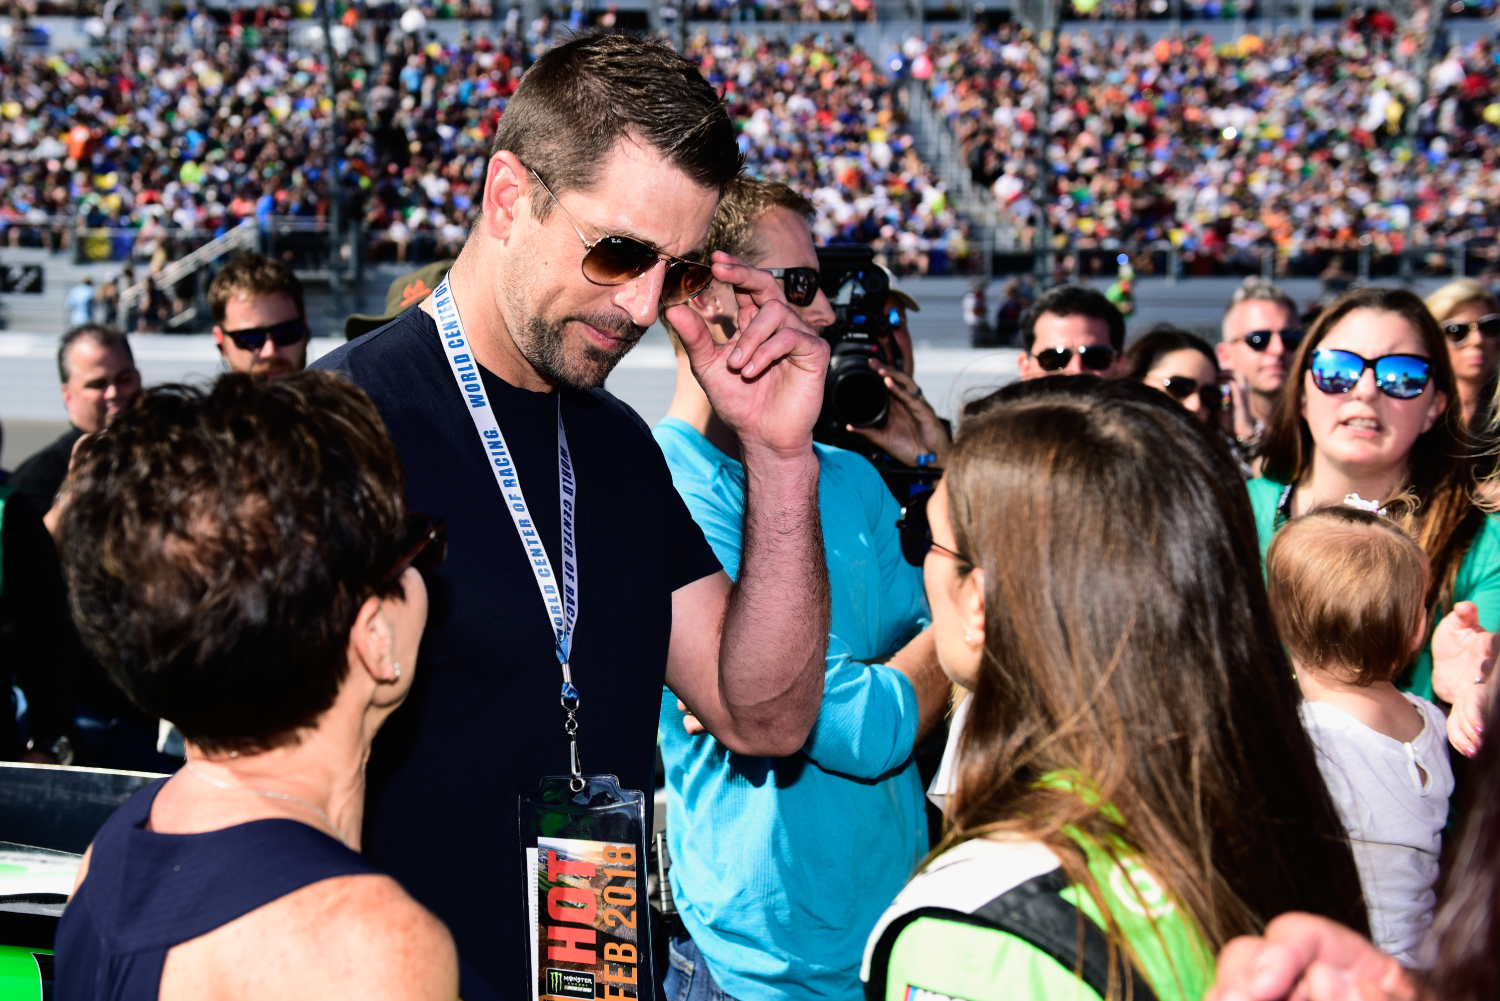 Why did Aaron Rodgers intimidate Danica Patrick so much?